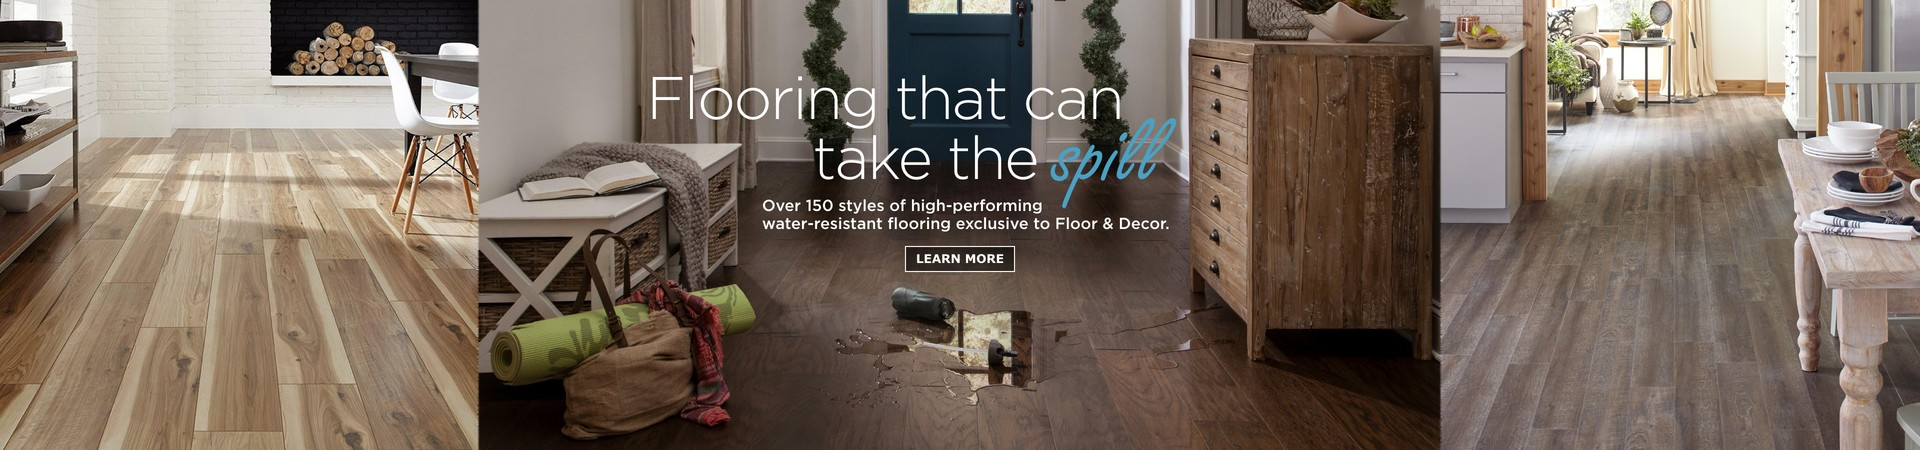 Over 150 styles of high-performing water-resistant flooring exclusive to Floor & Decor.